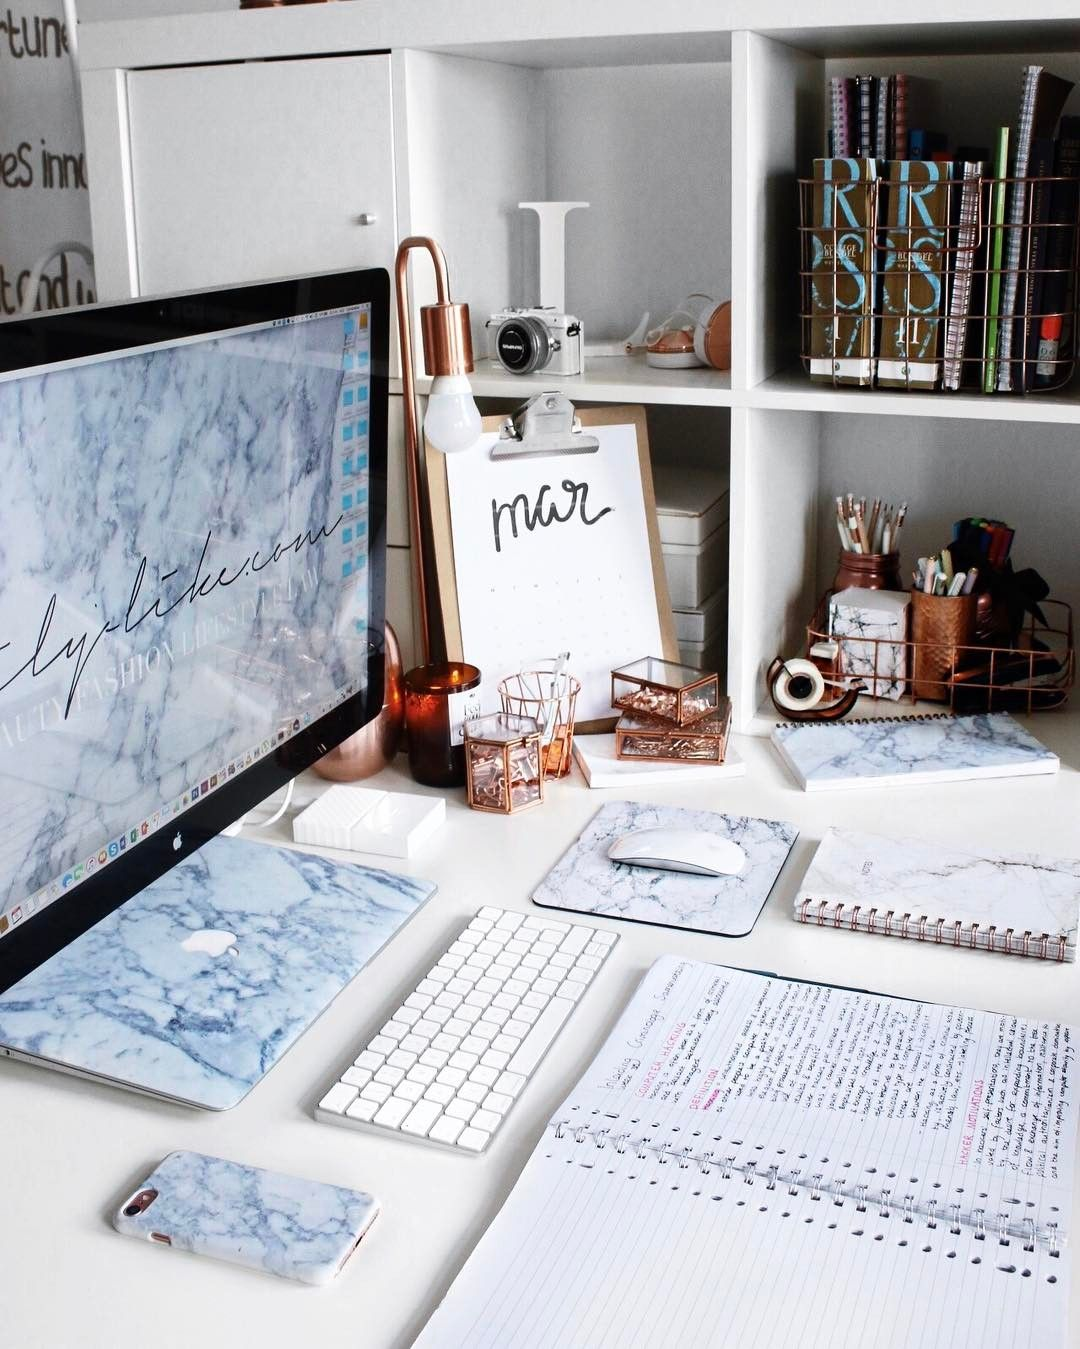 Cute Furniture For Apartments: Desk Goals By @StudyingwithLily